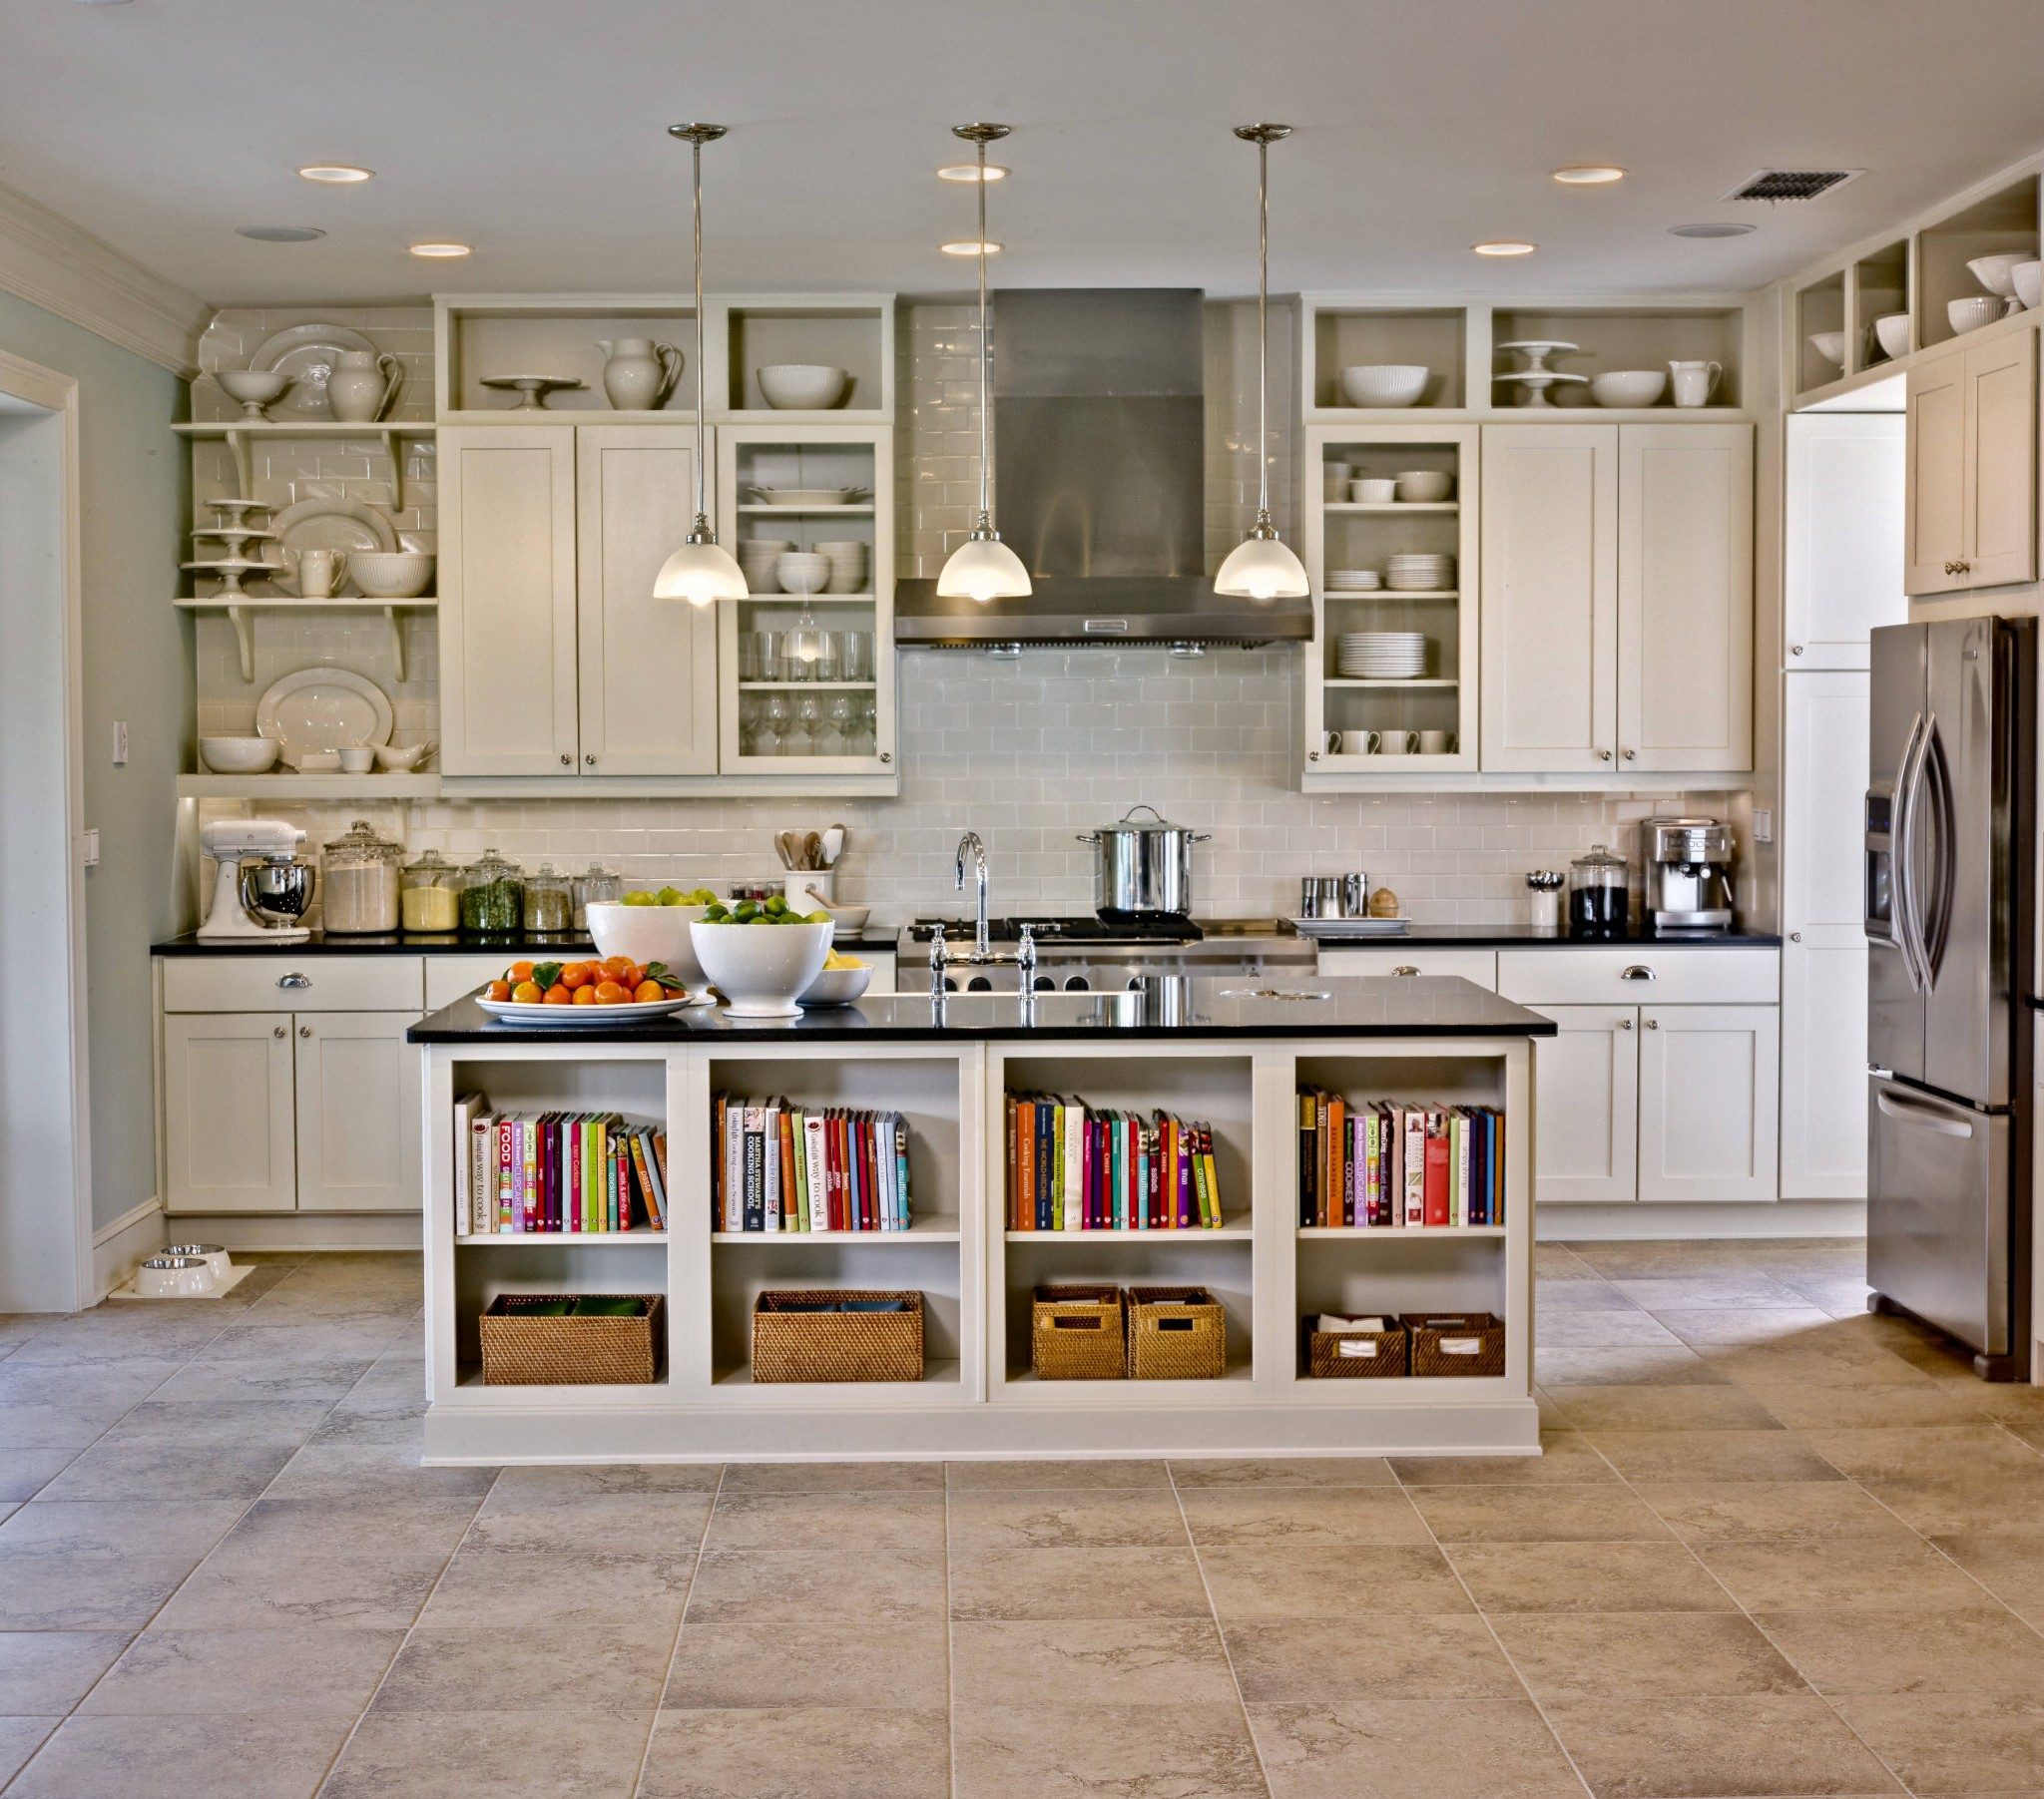 5 simple inexpensive kitchen re designs inexpensive kitchen cabinets Builder Concept Home